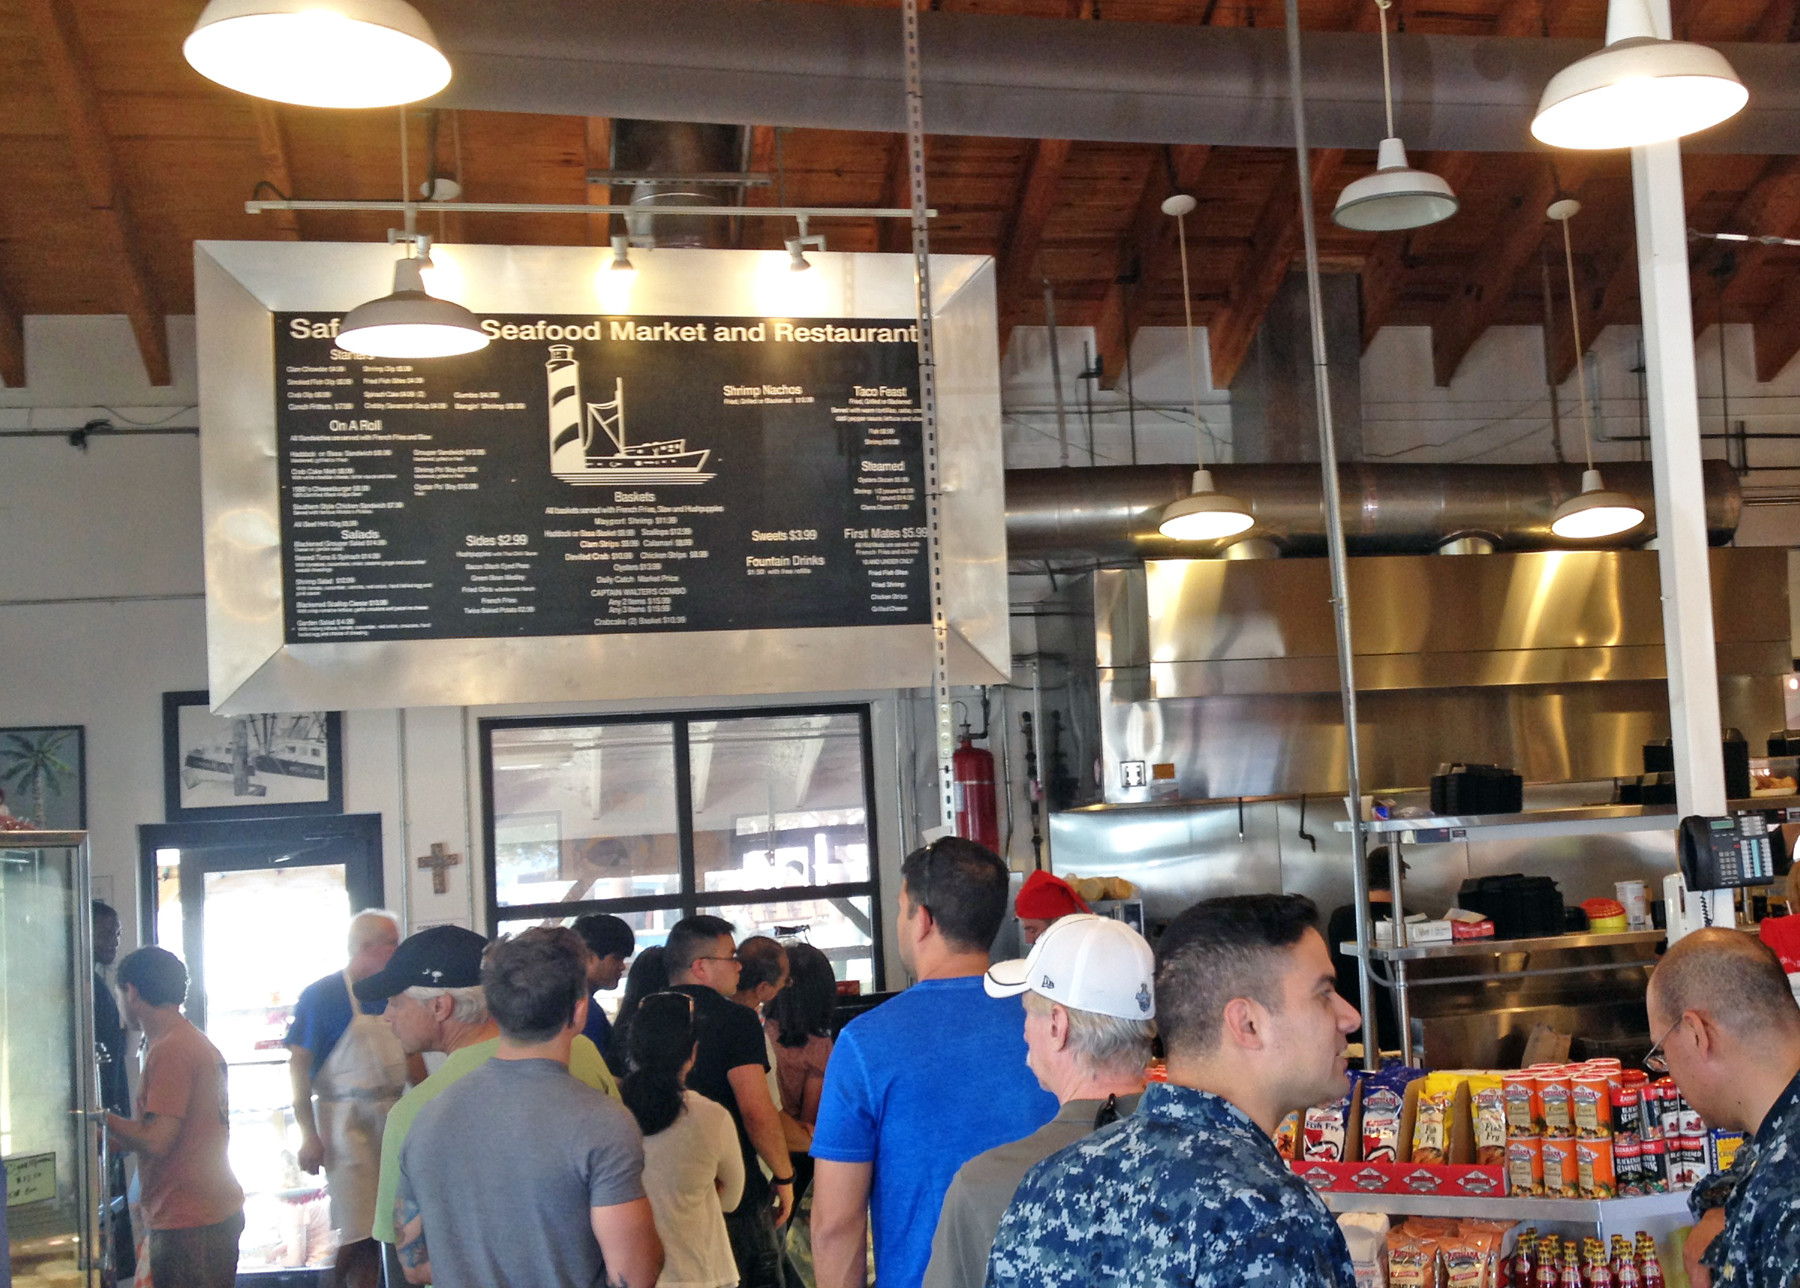 Around 12:30 on Saturday, the line was almost out the door for lunch orders.